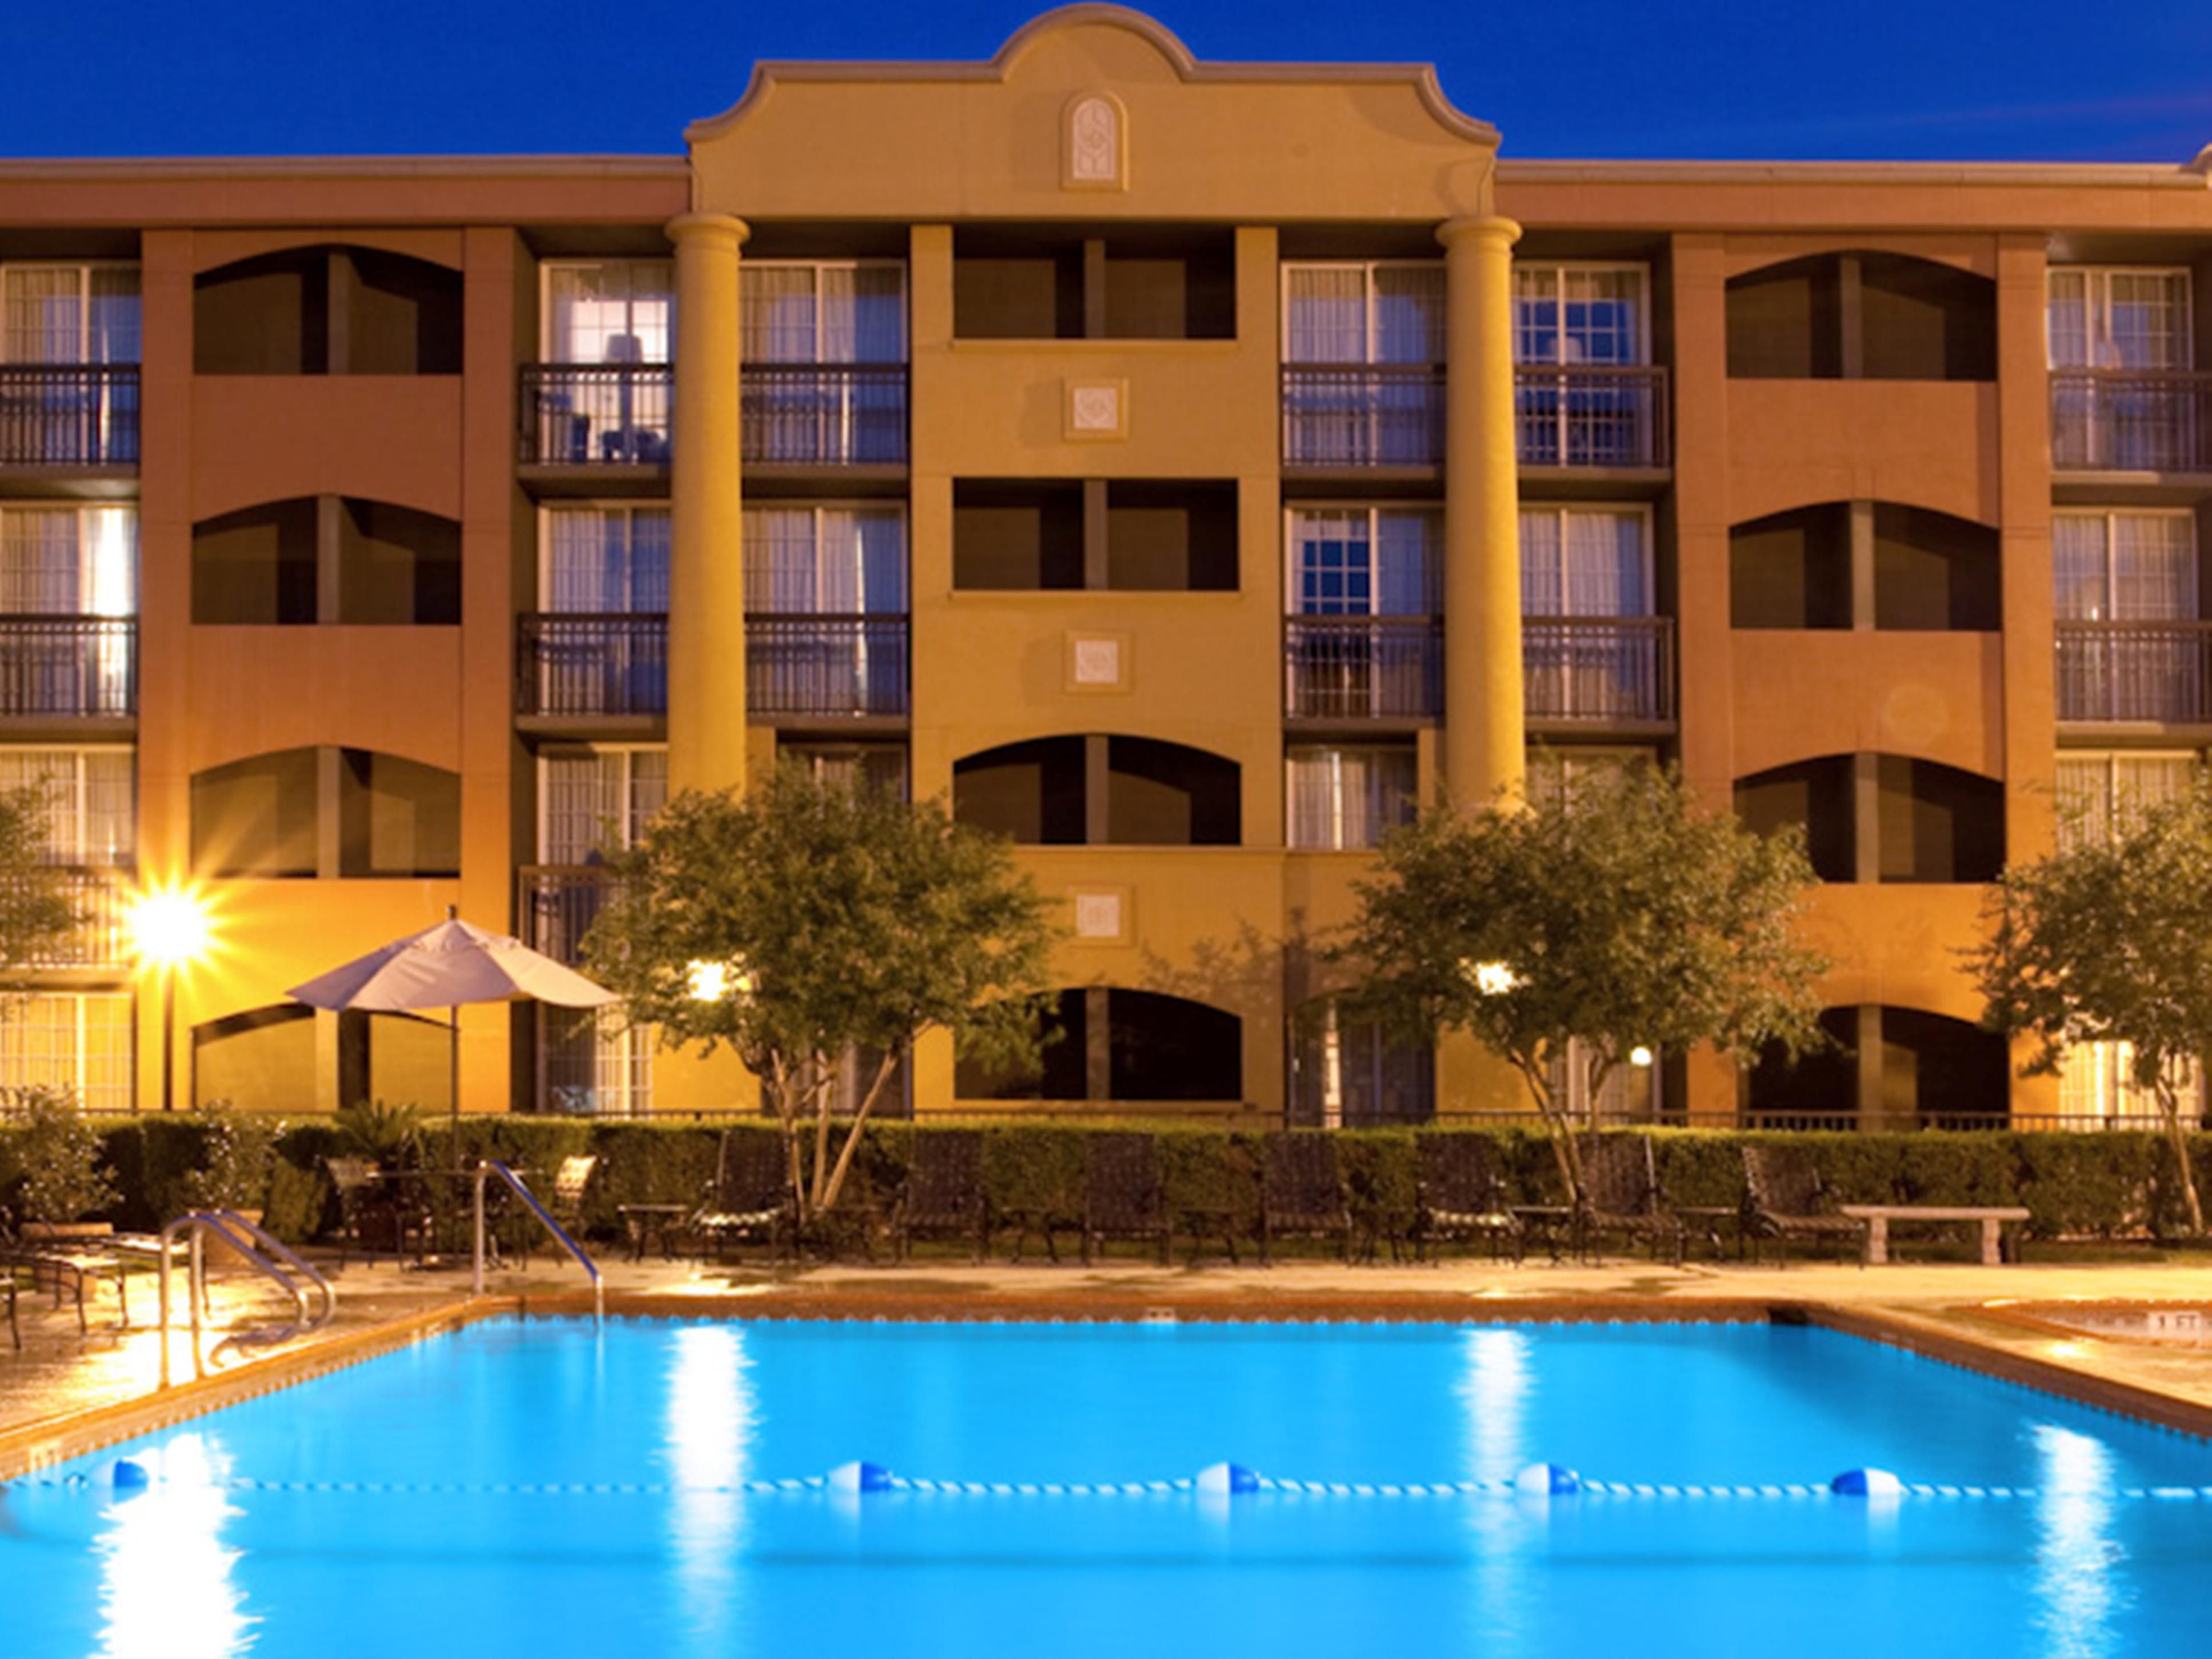 One of San Antonio's Largest Hotel Swimming Pools